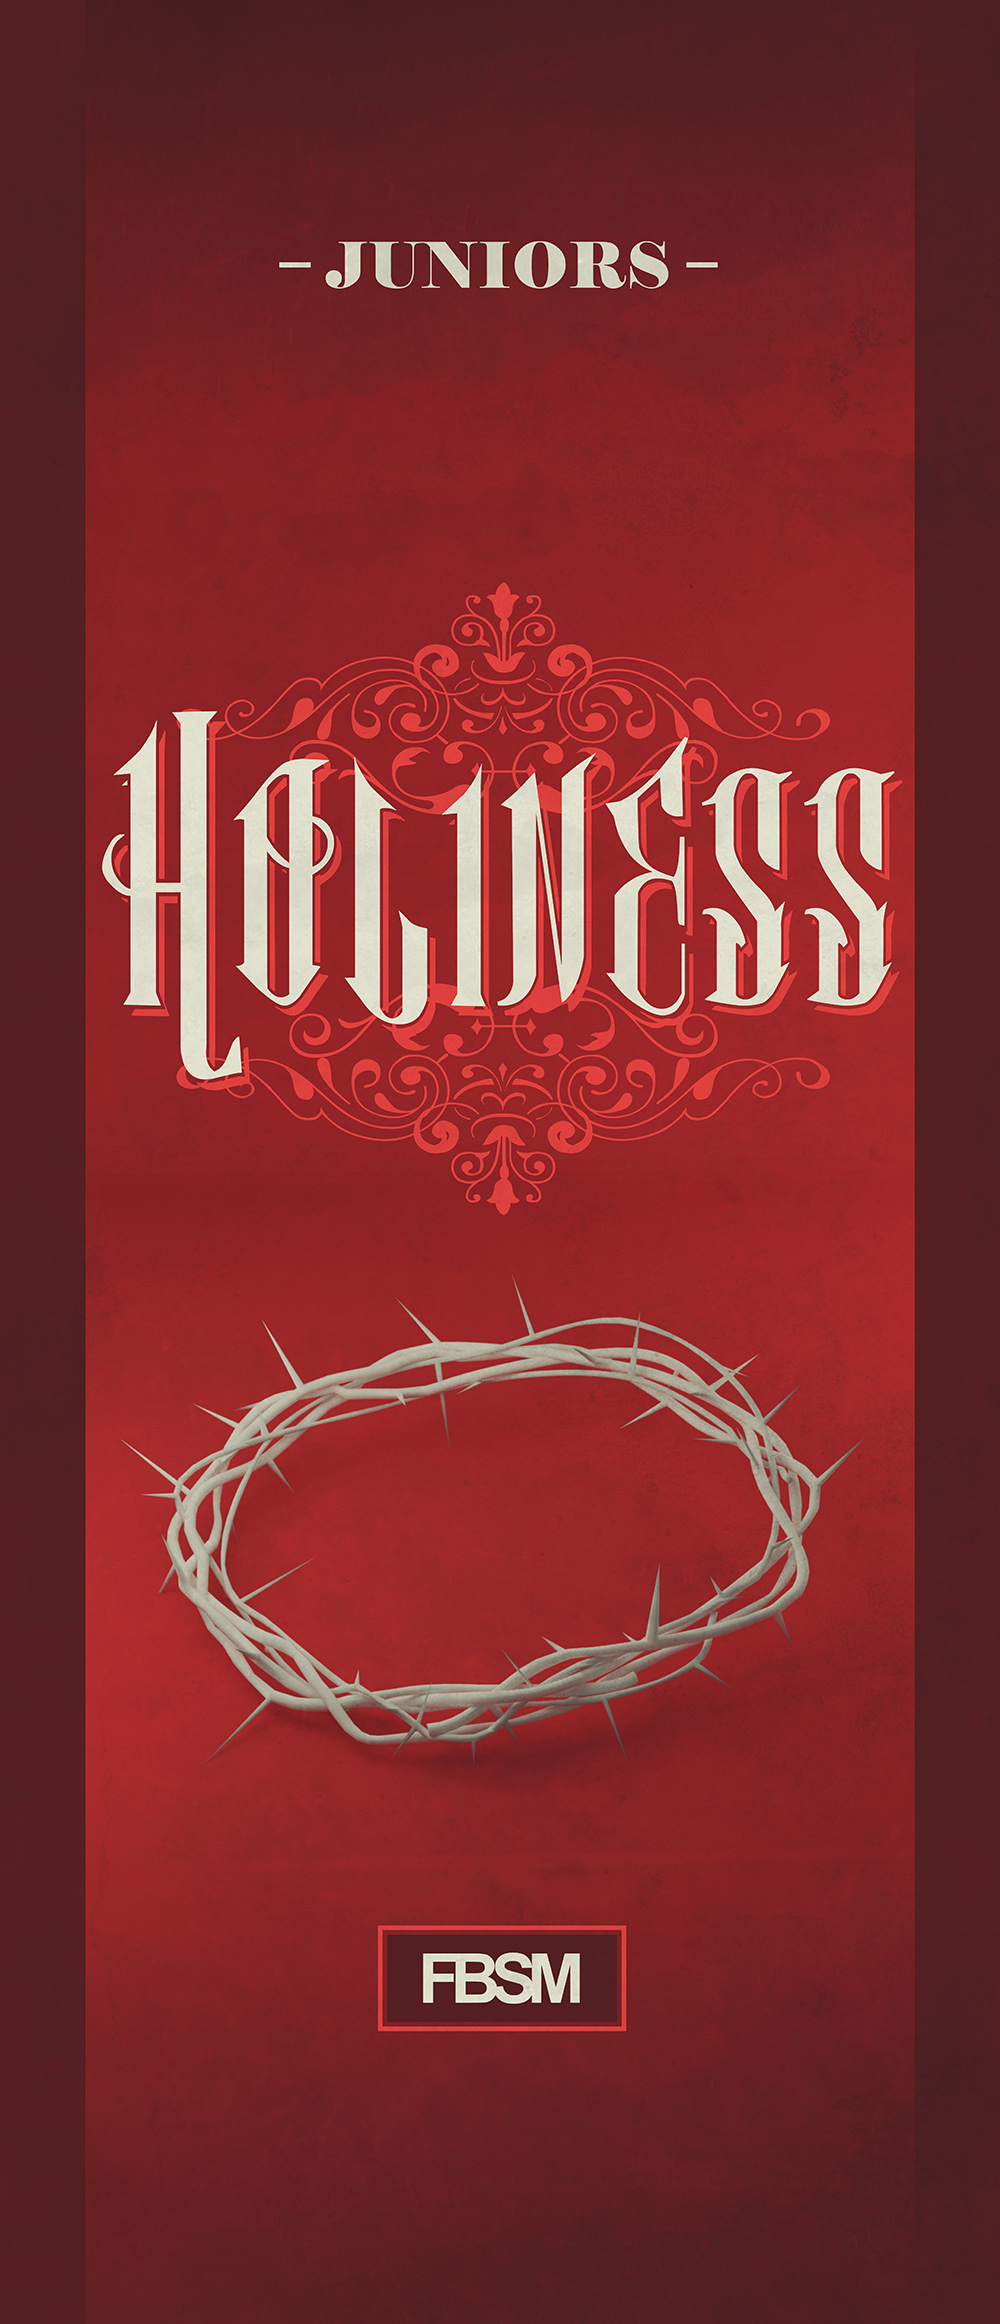 Poster  - Holiness 1.jpg